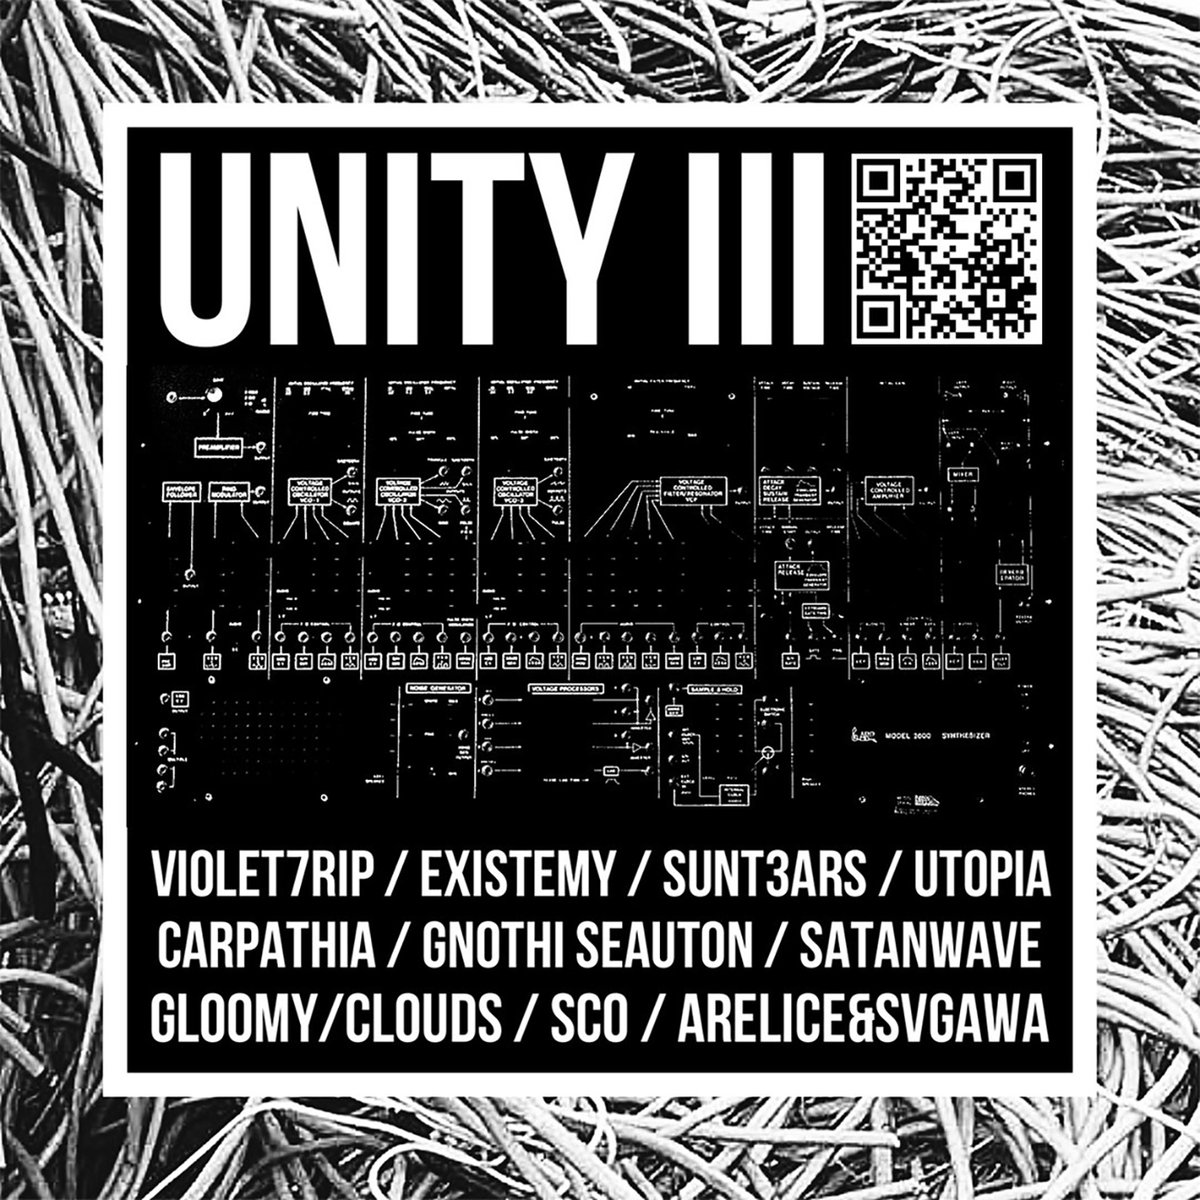 ΣXIS†EMY - The Ring @ 'Various Artists - UNITY III' album (electronic, experimental)